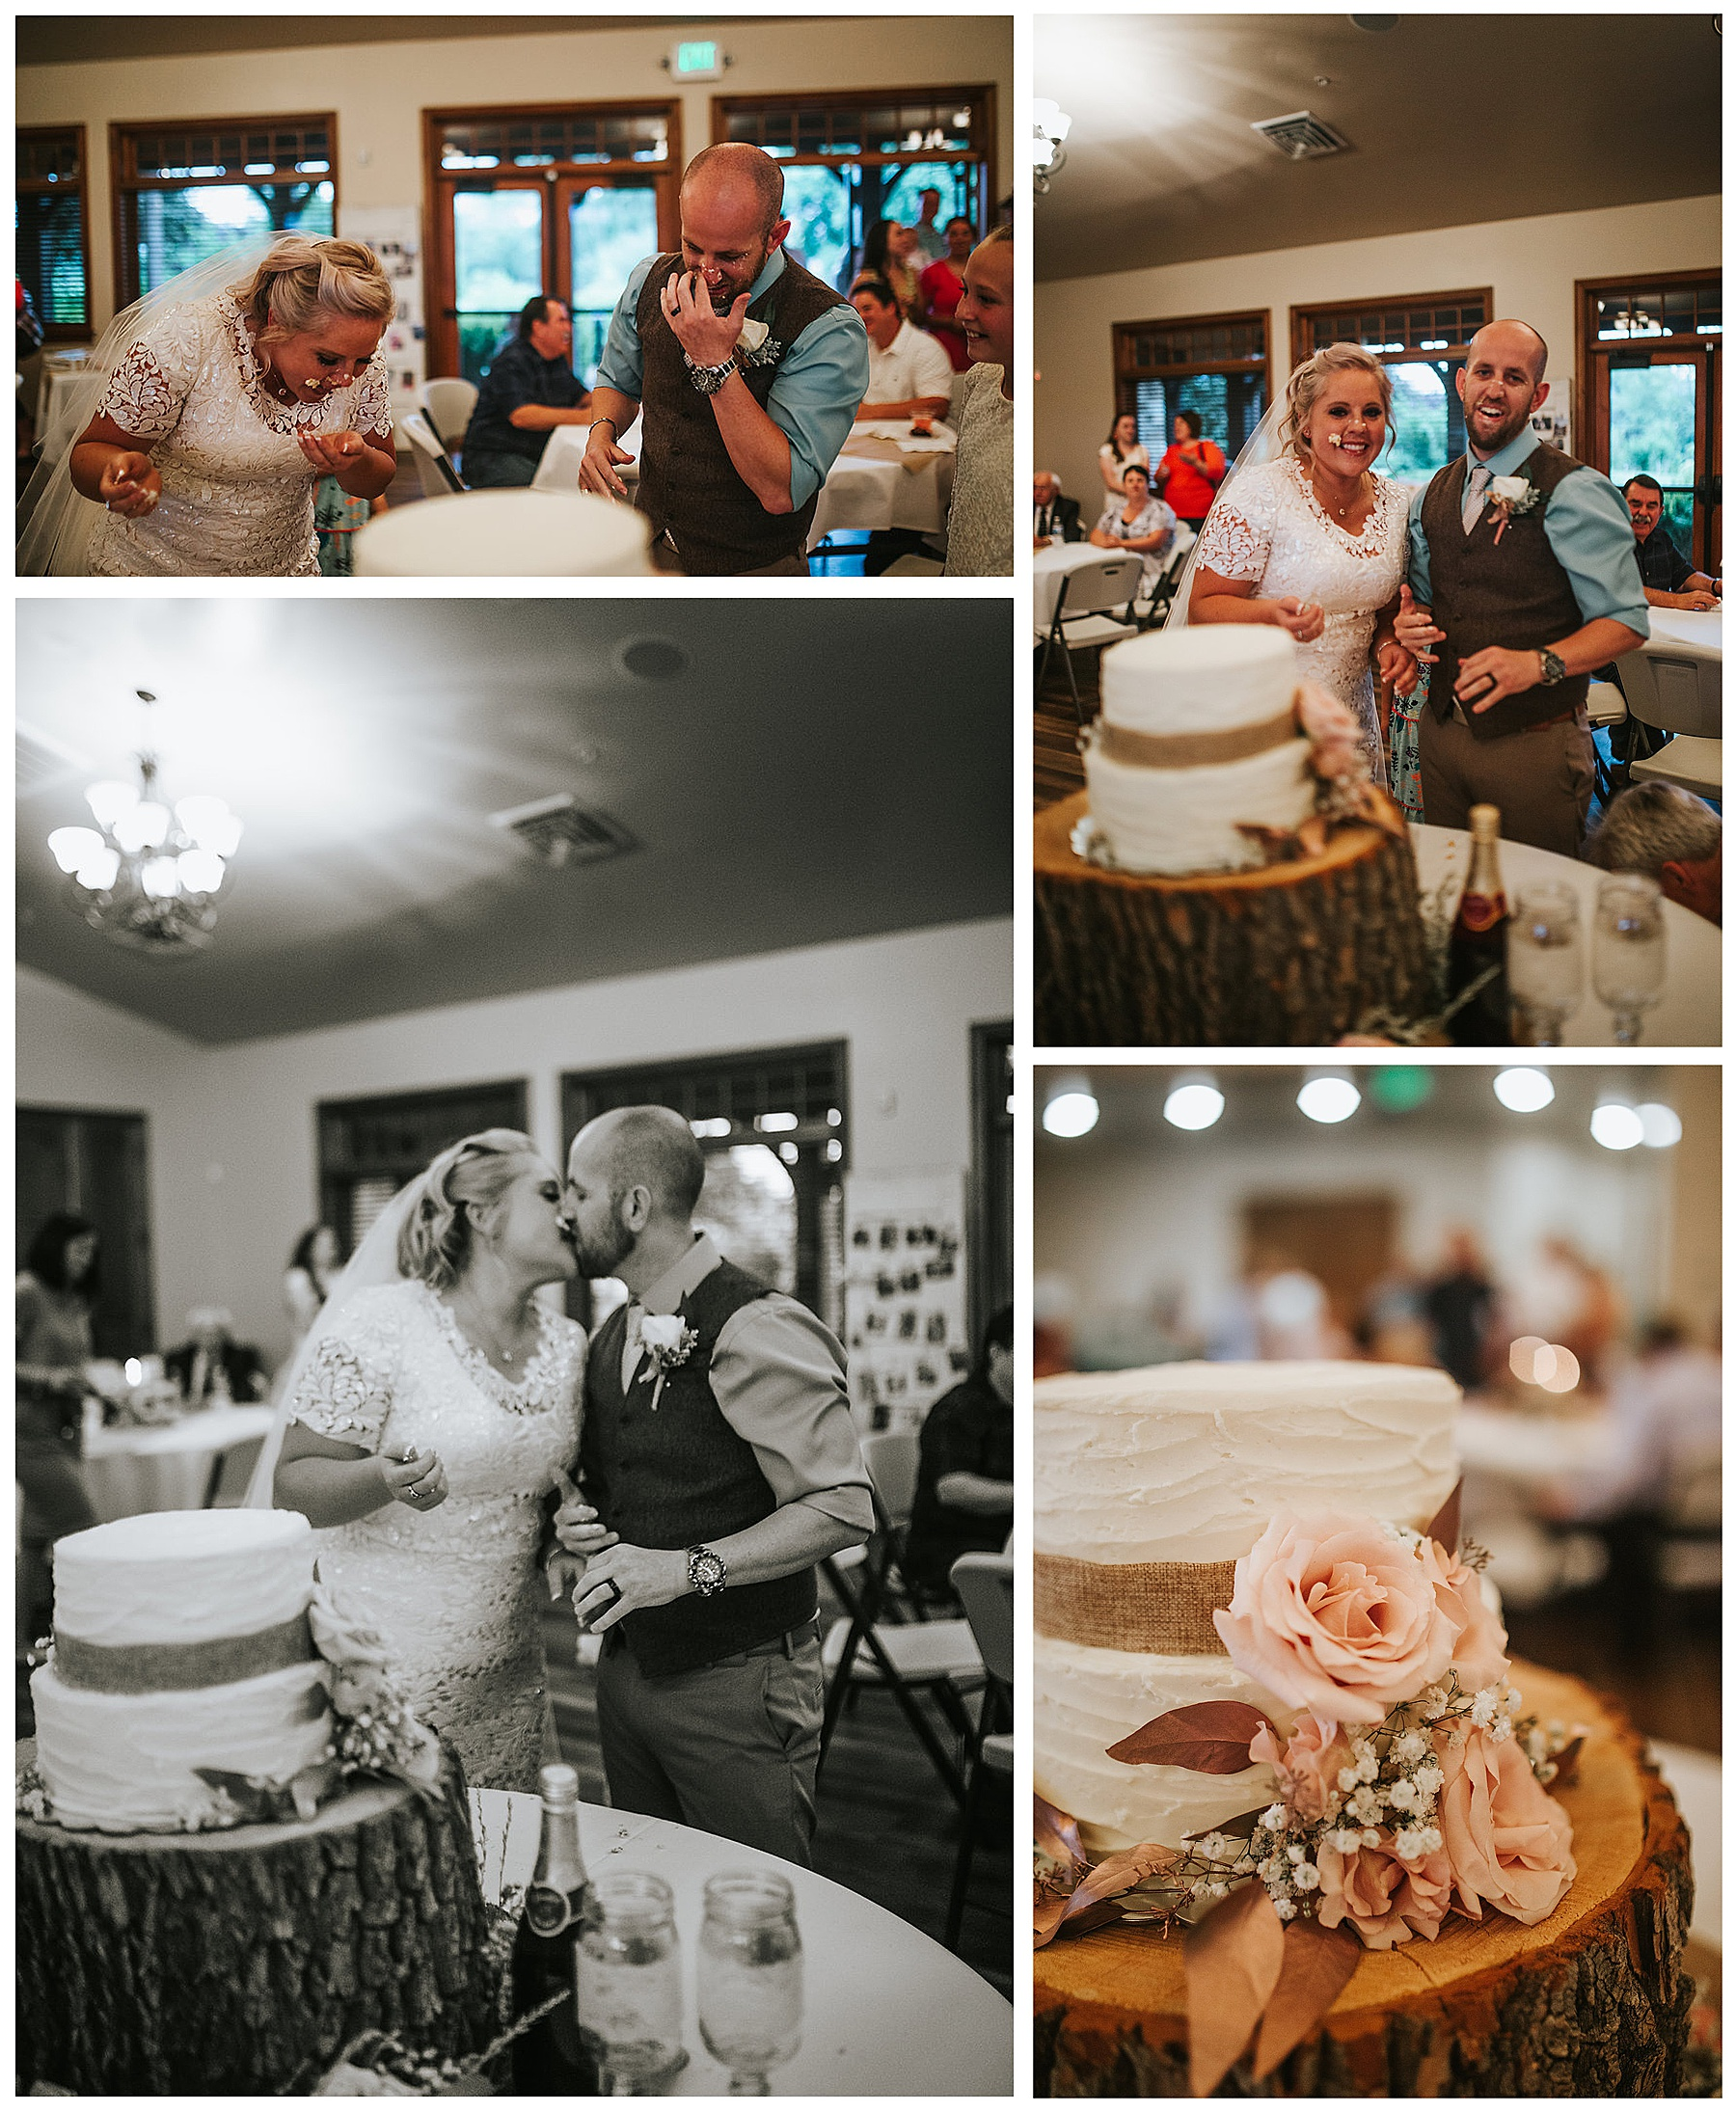 rustic-chic-cake-wedding-reception-payson-utah-lds-wedding-photographer-look-for-the-light-photo-video